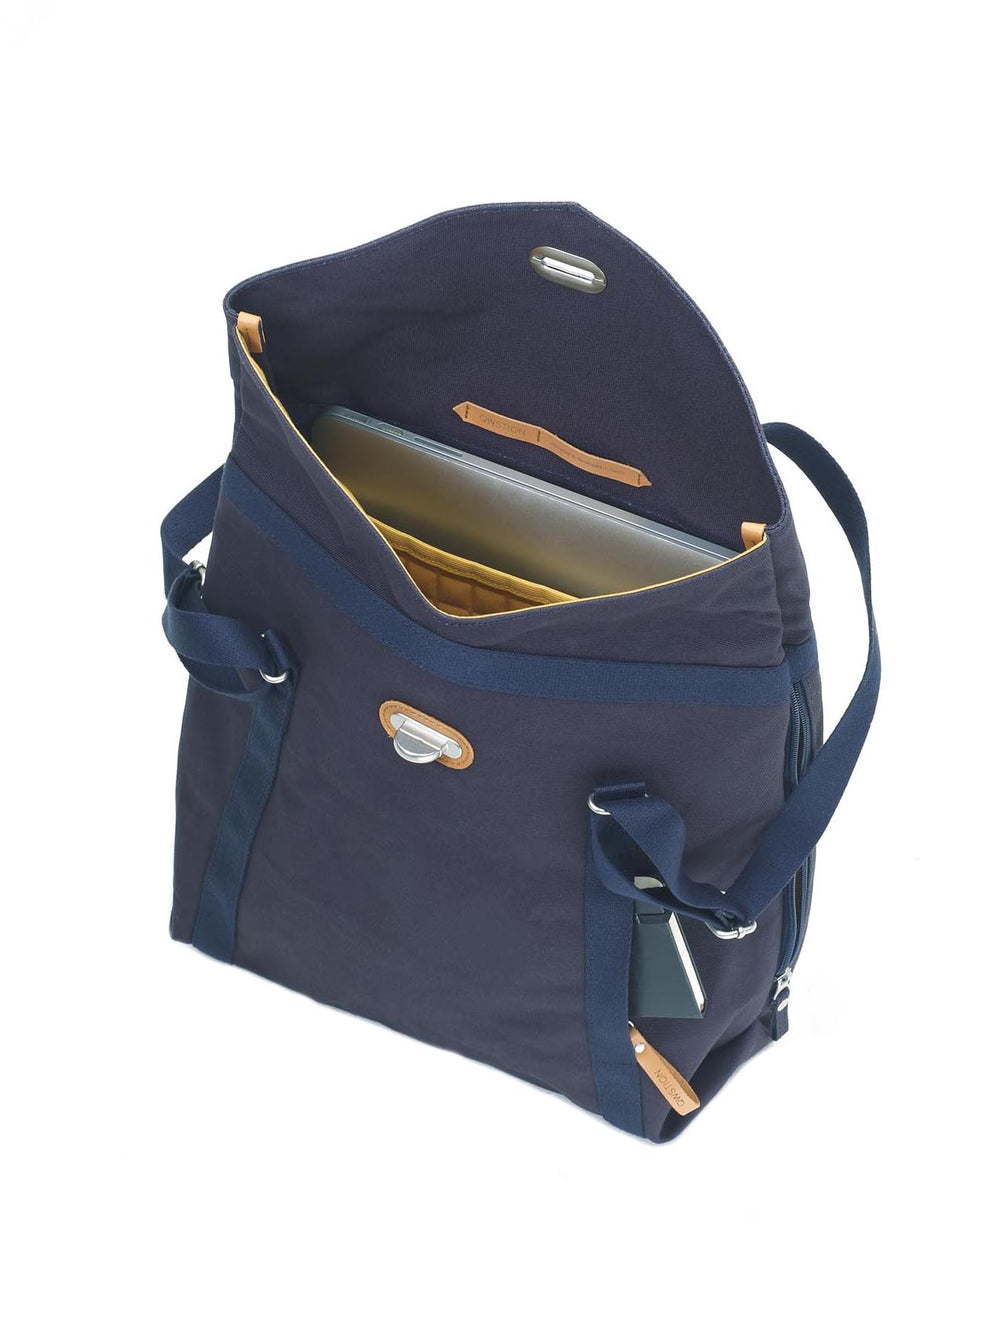 Qwstion Tote padded sleeve for laptop